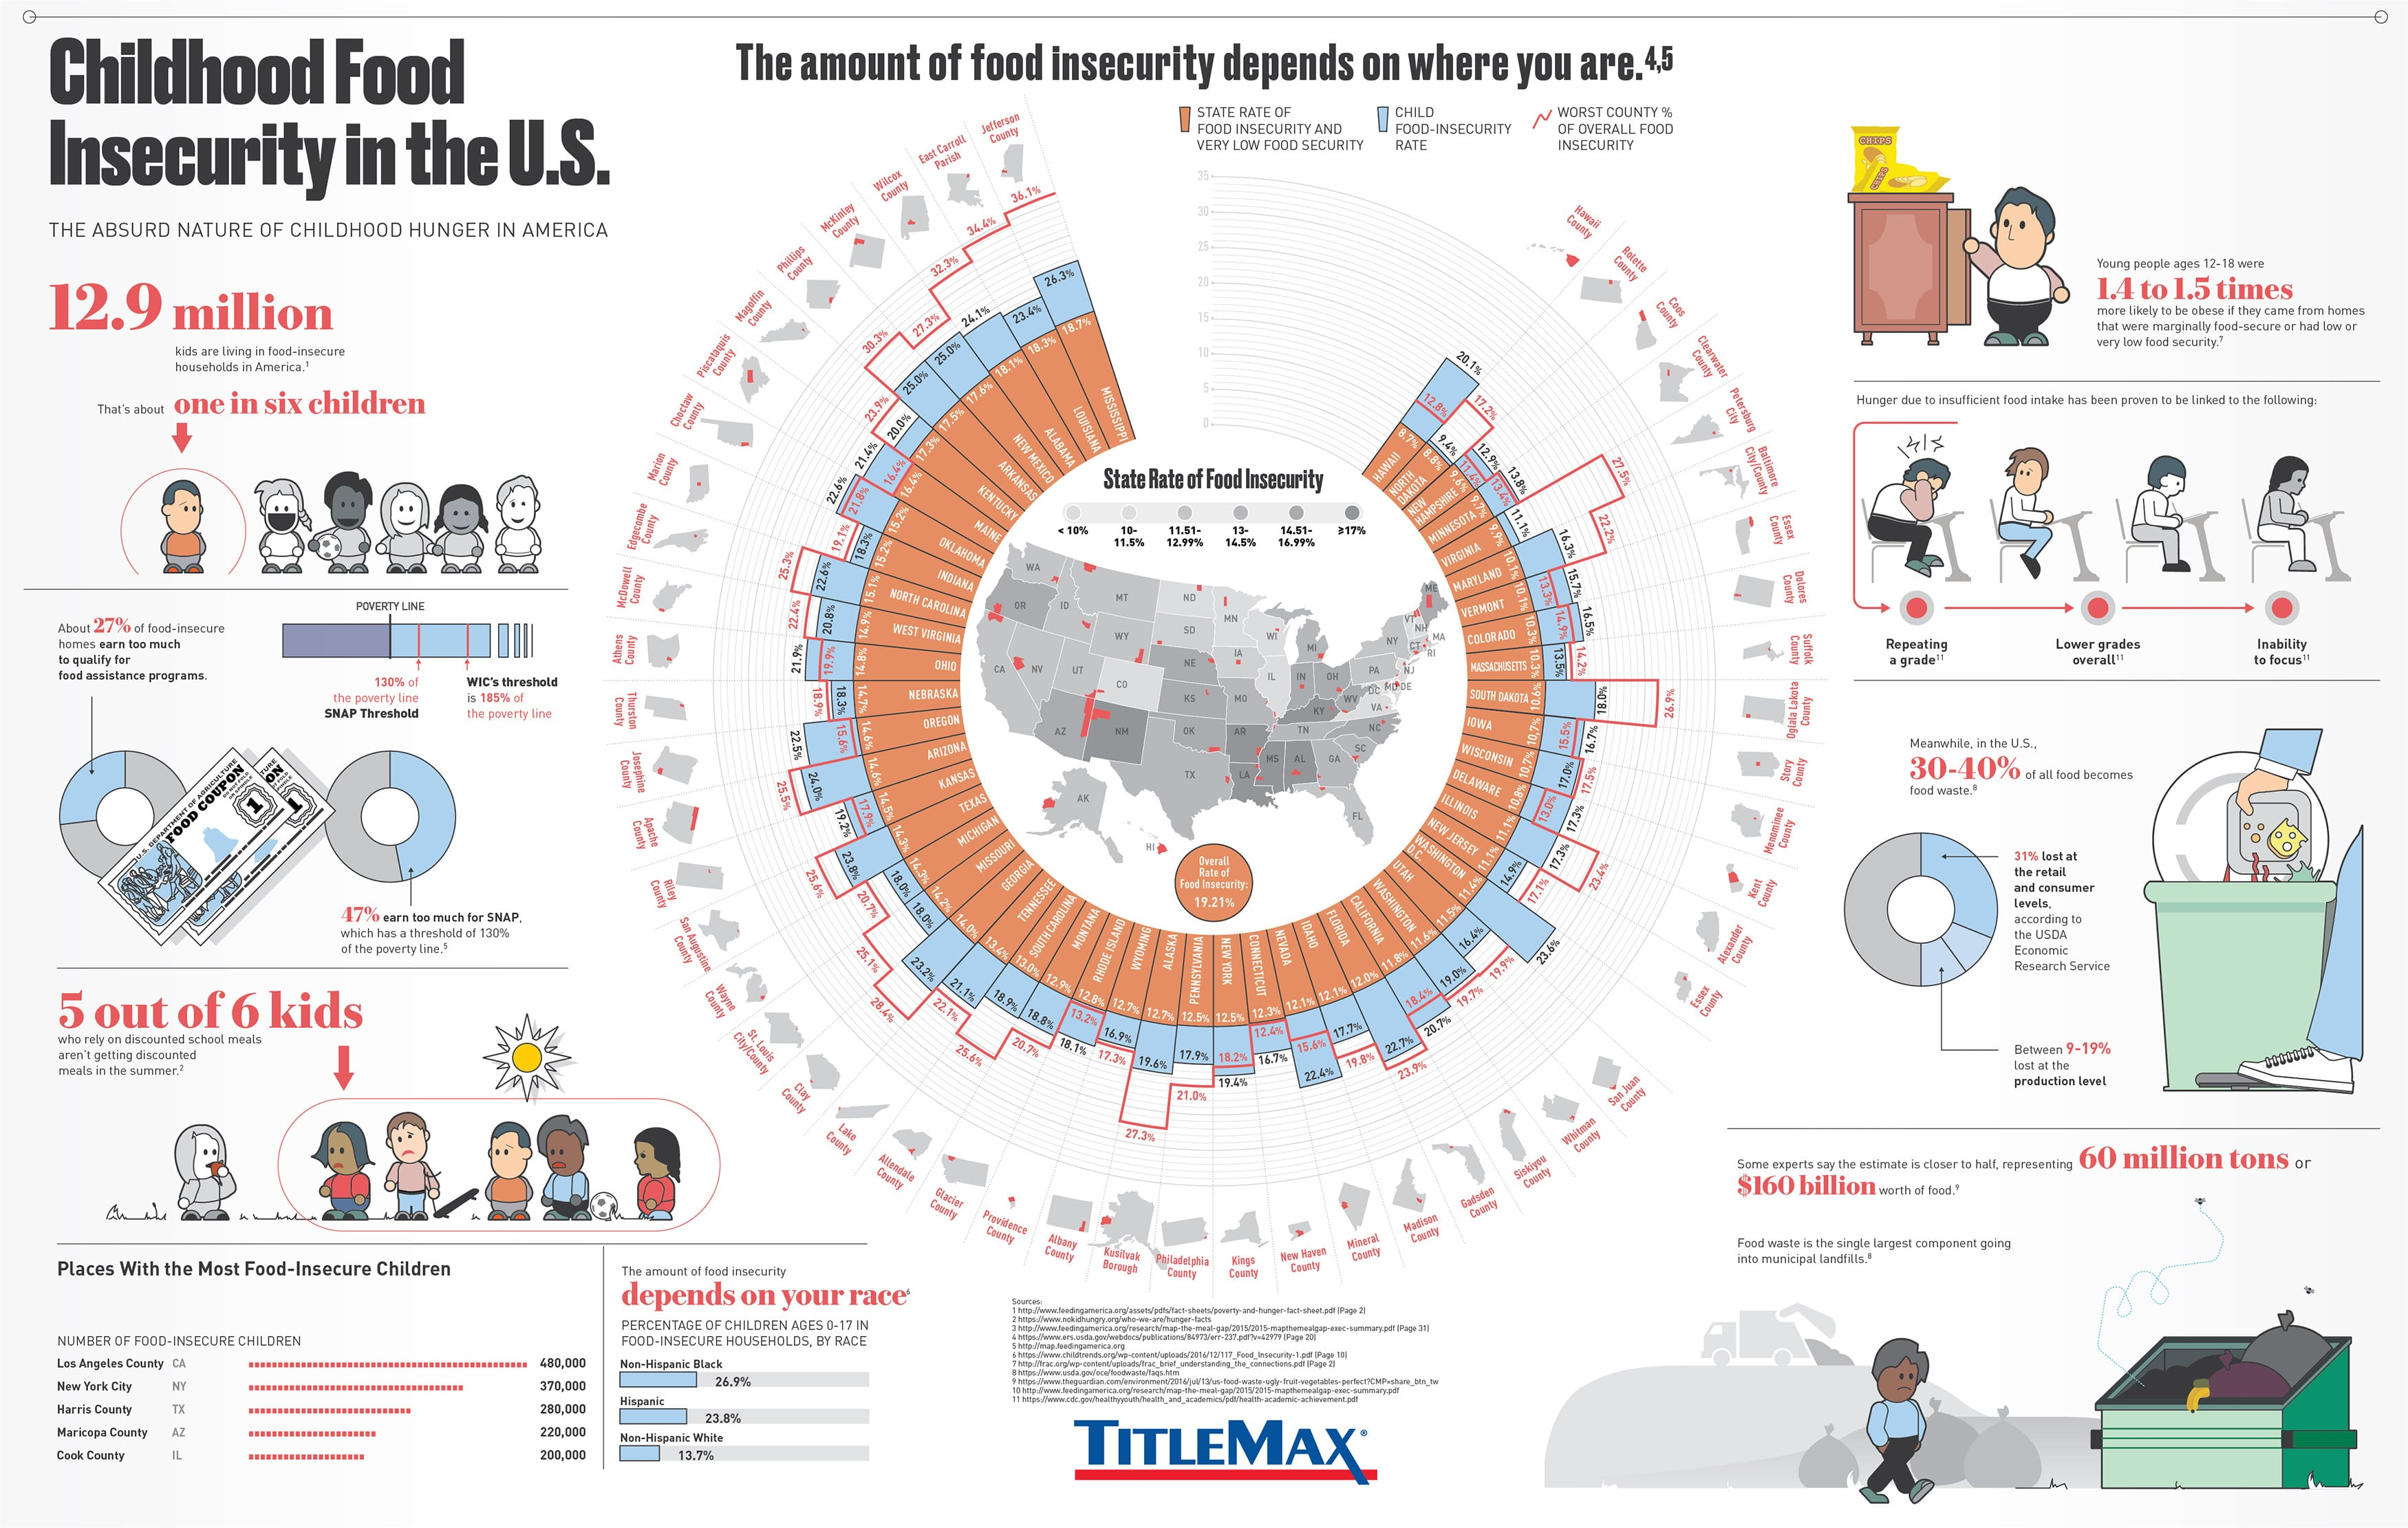 Childhood Food Insecurity in the U.S.